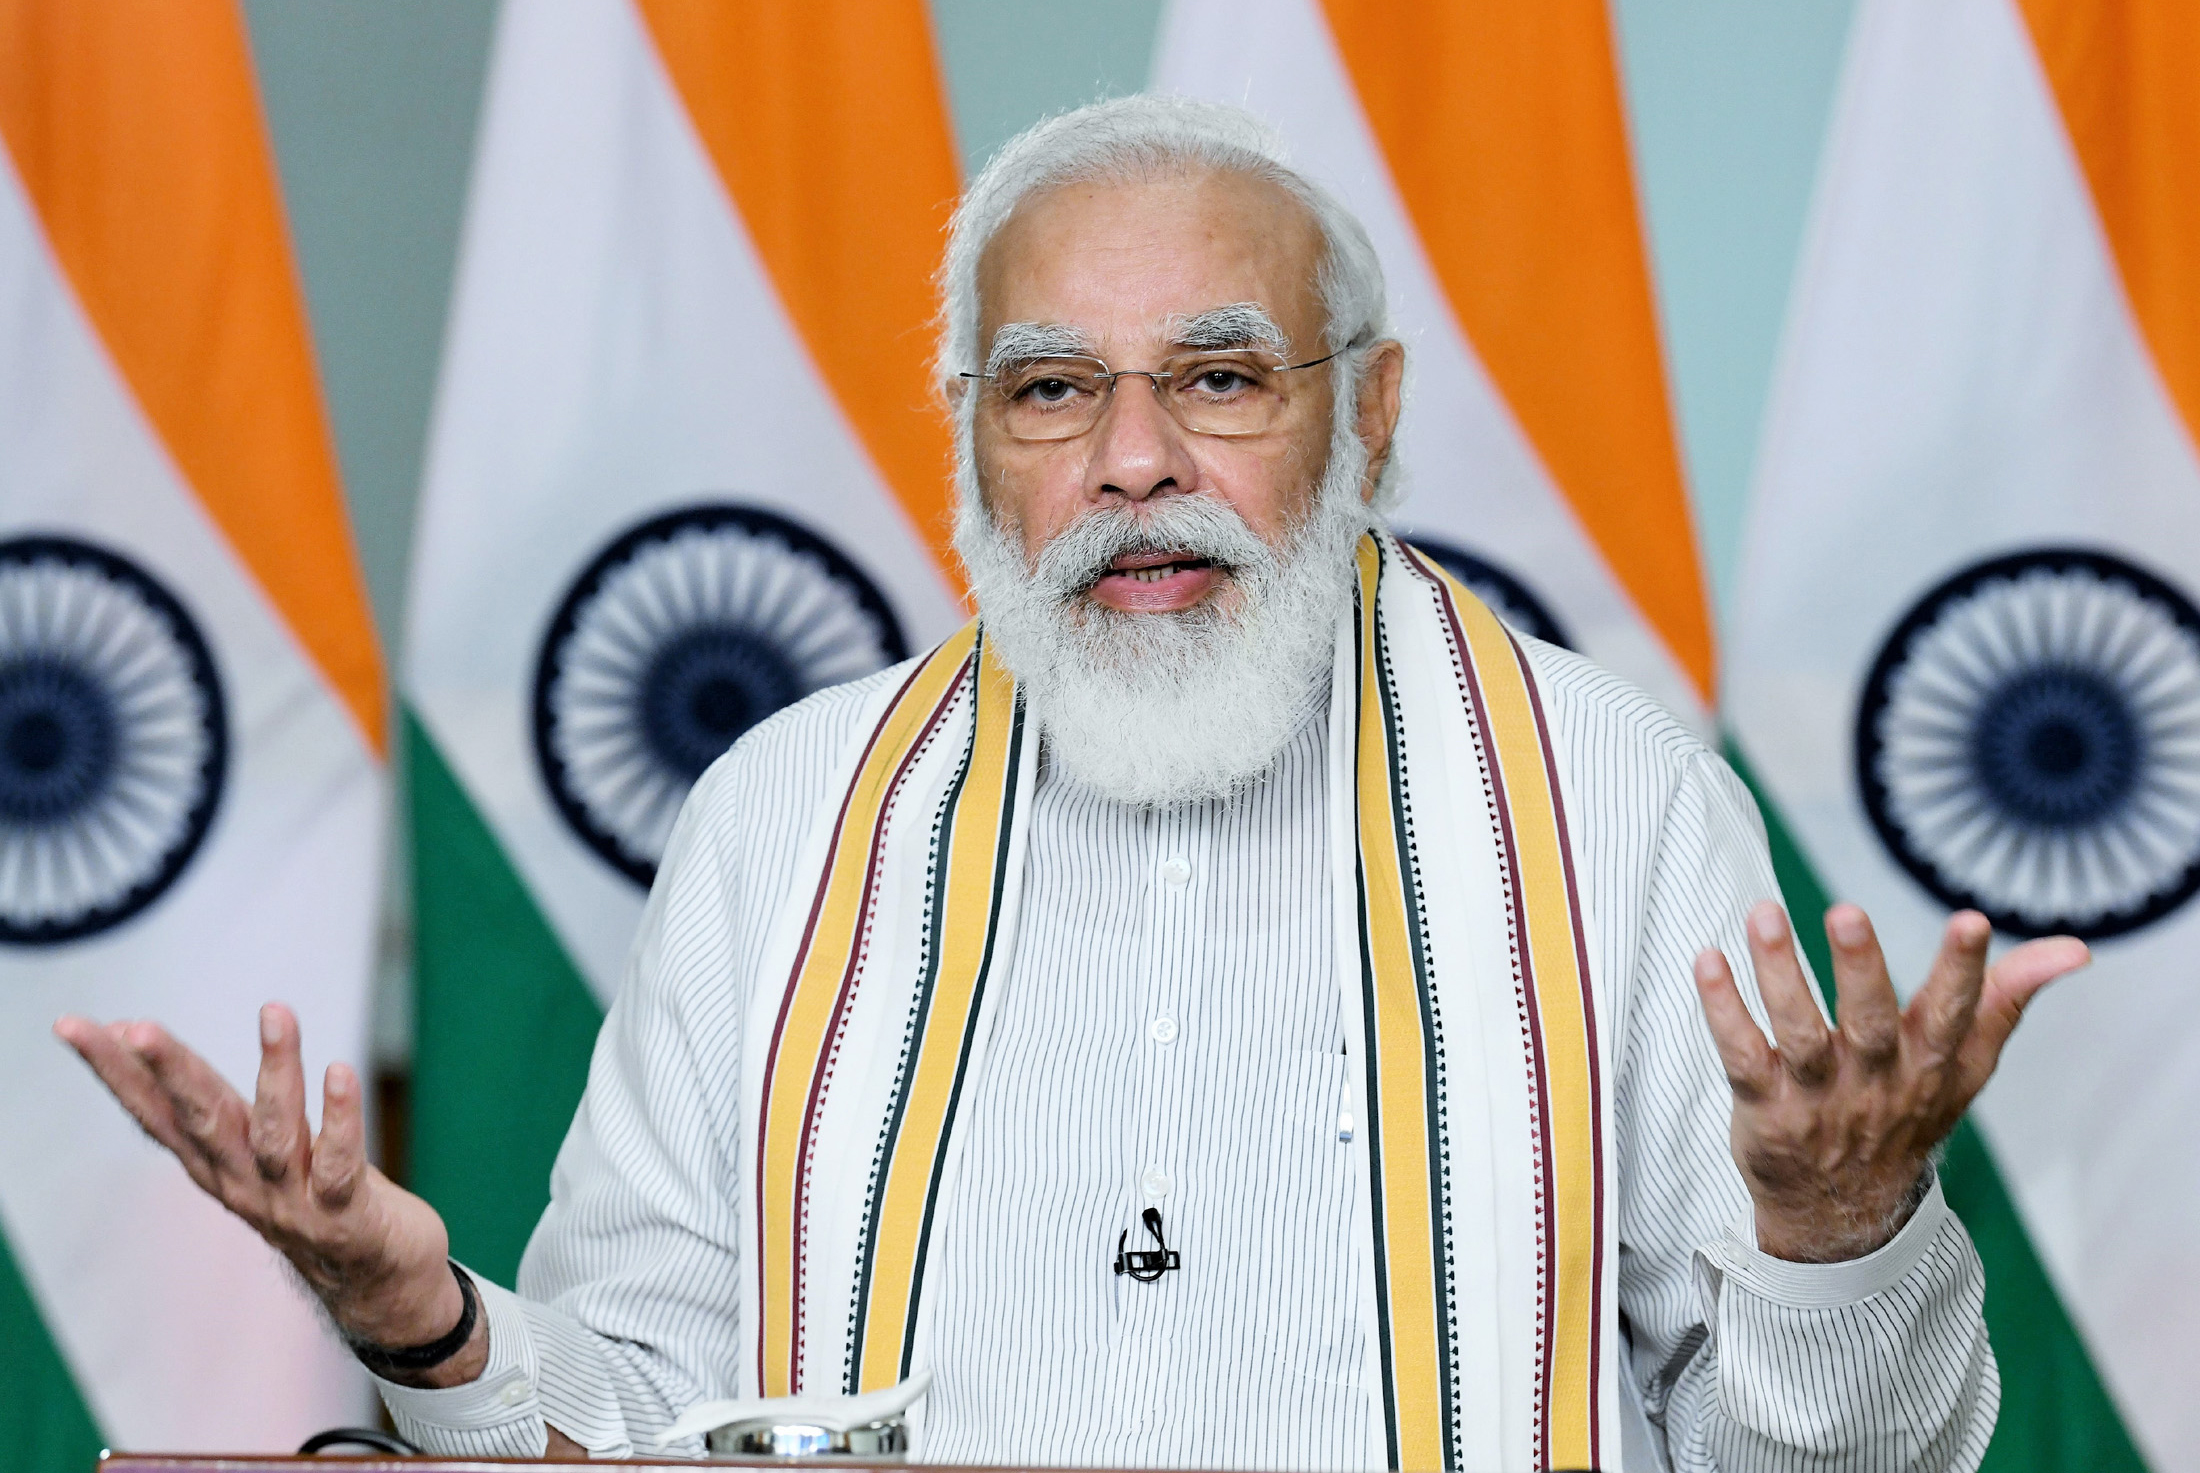 PM Modi assures farmers that MSP and govt procurement will continue